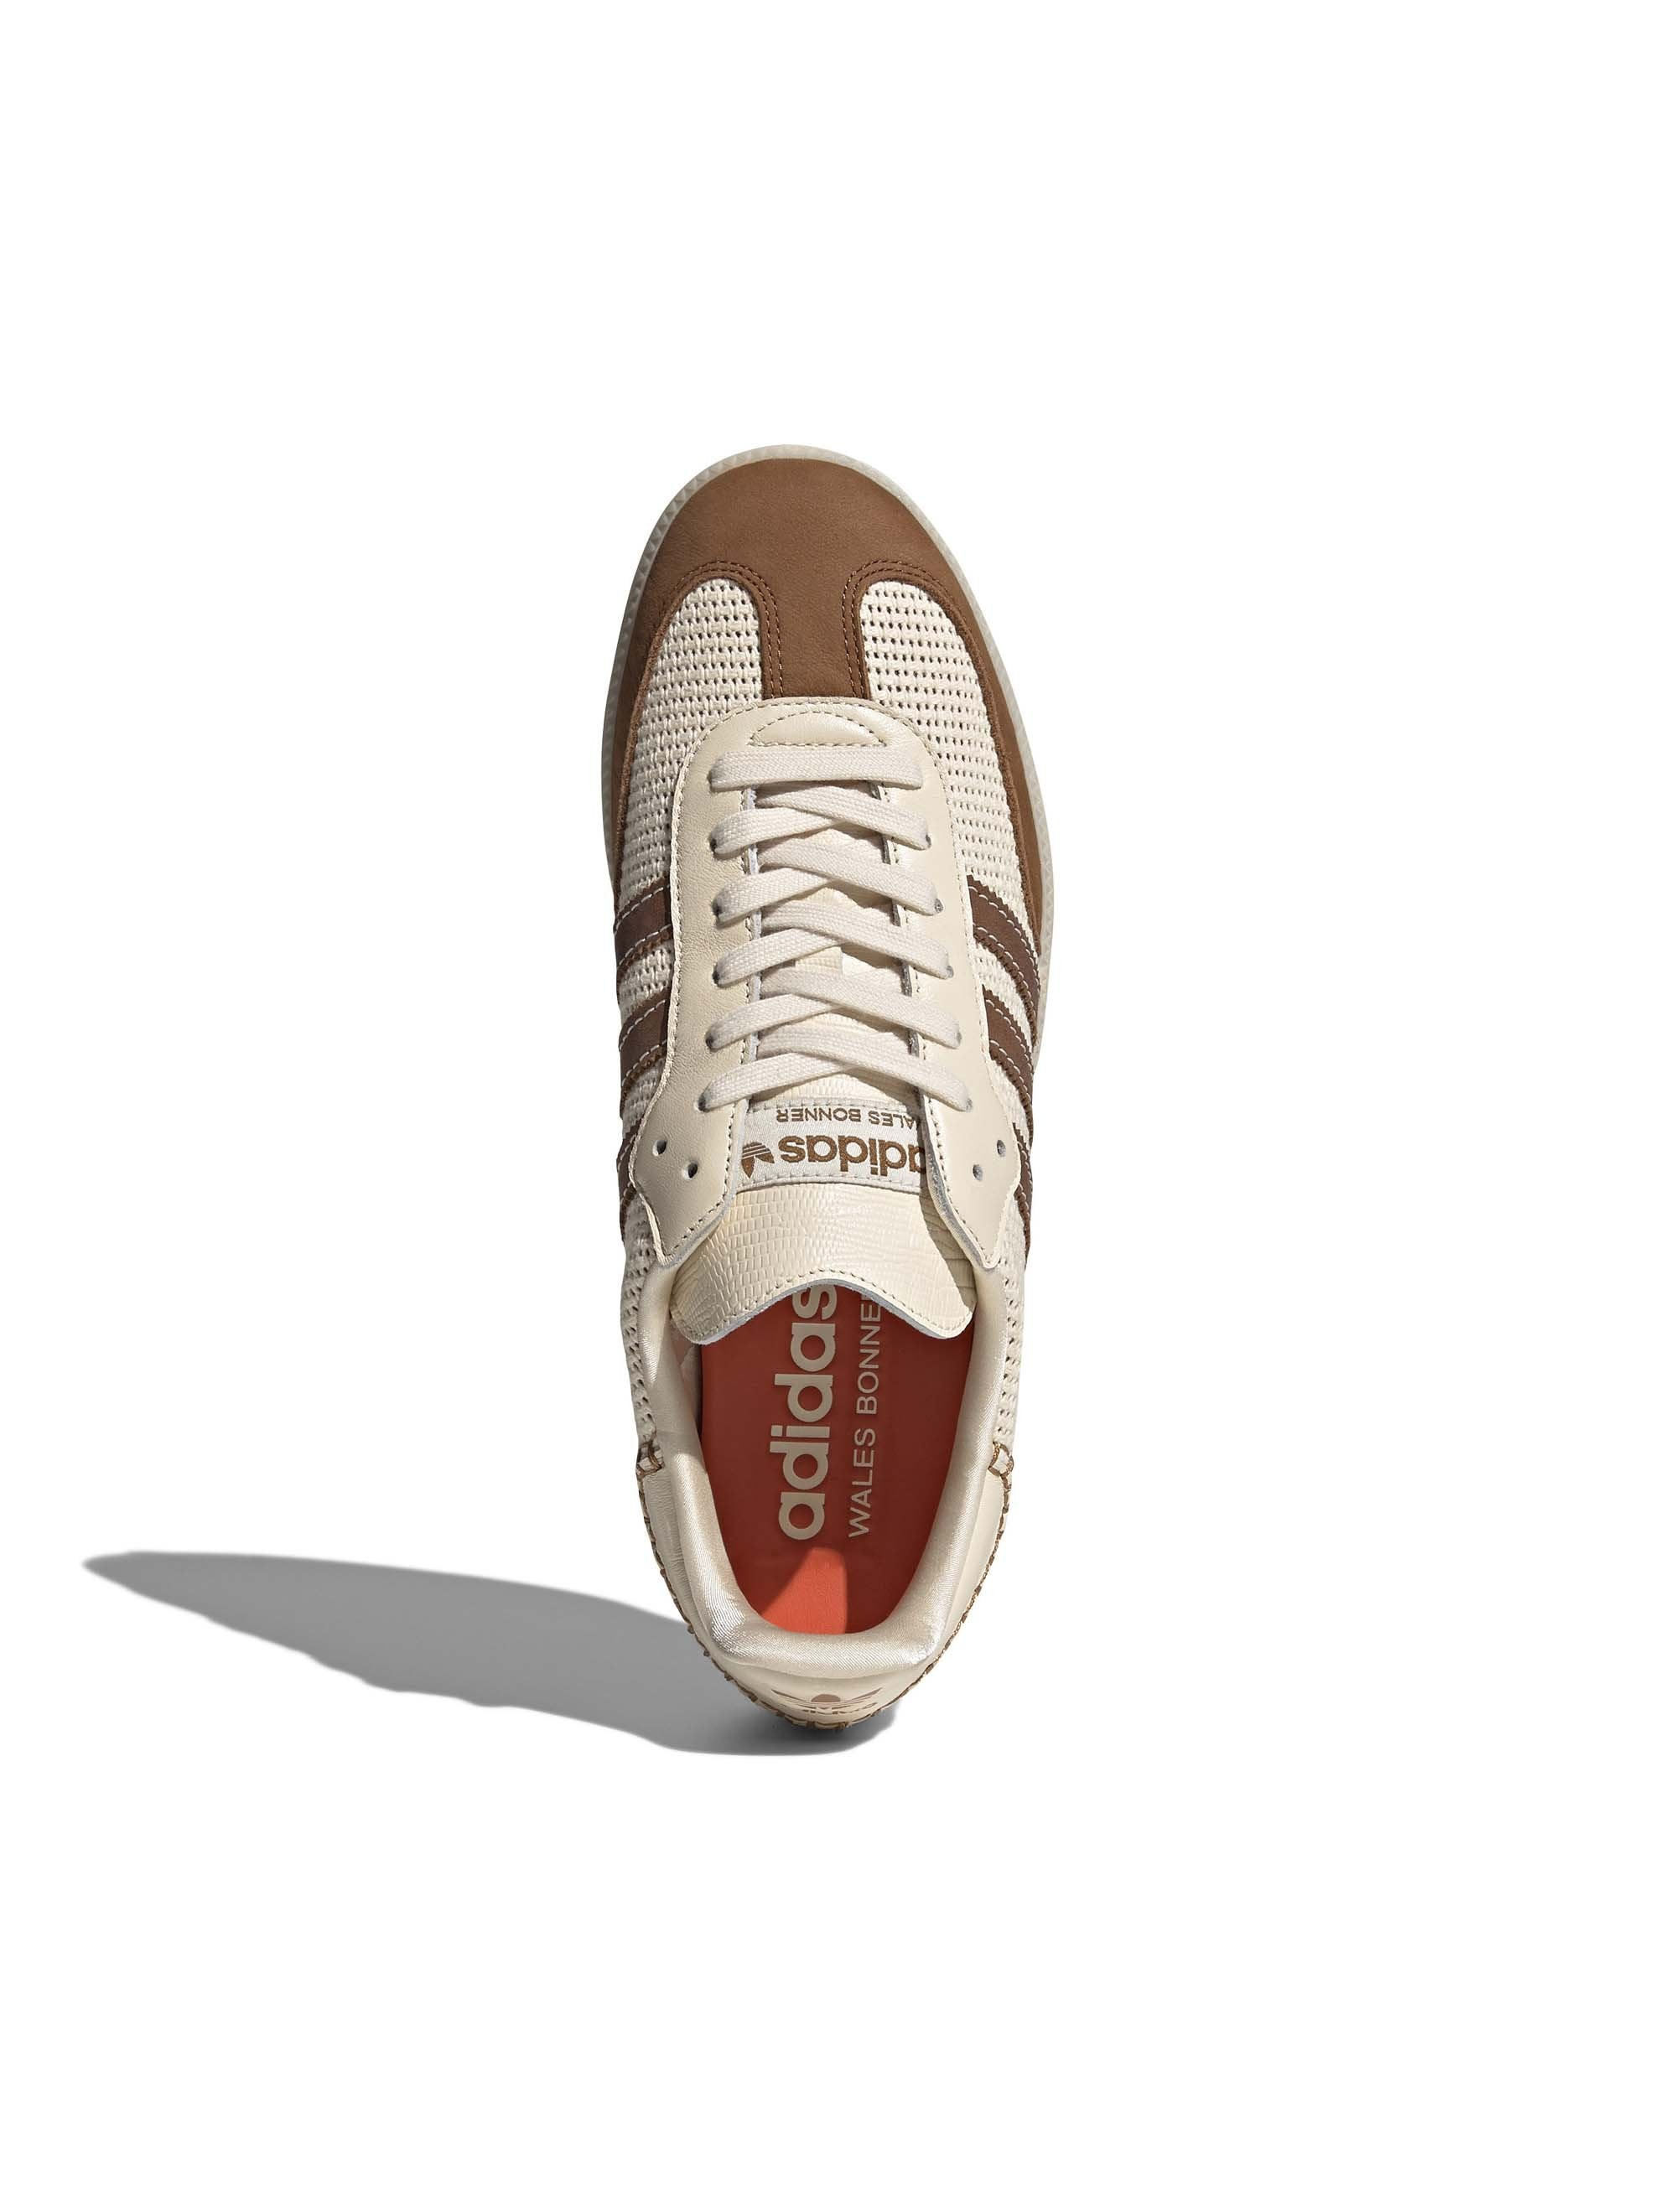 Cream White / Brown Adidas x Wales Bonner Samba 4